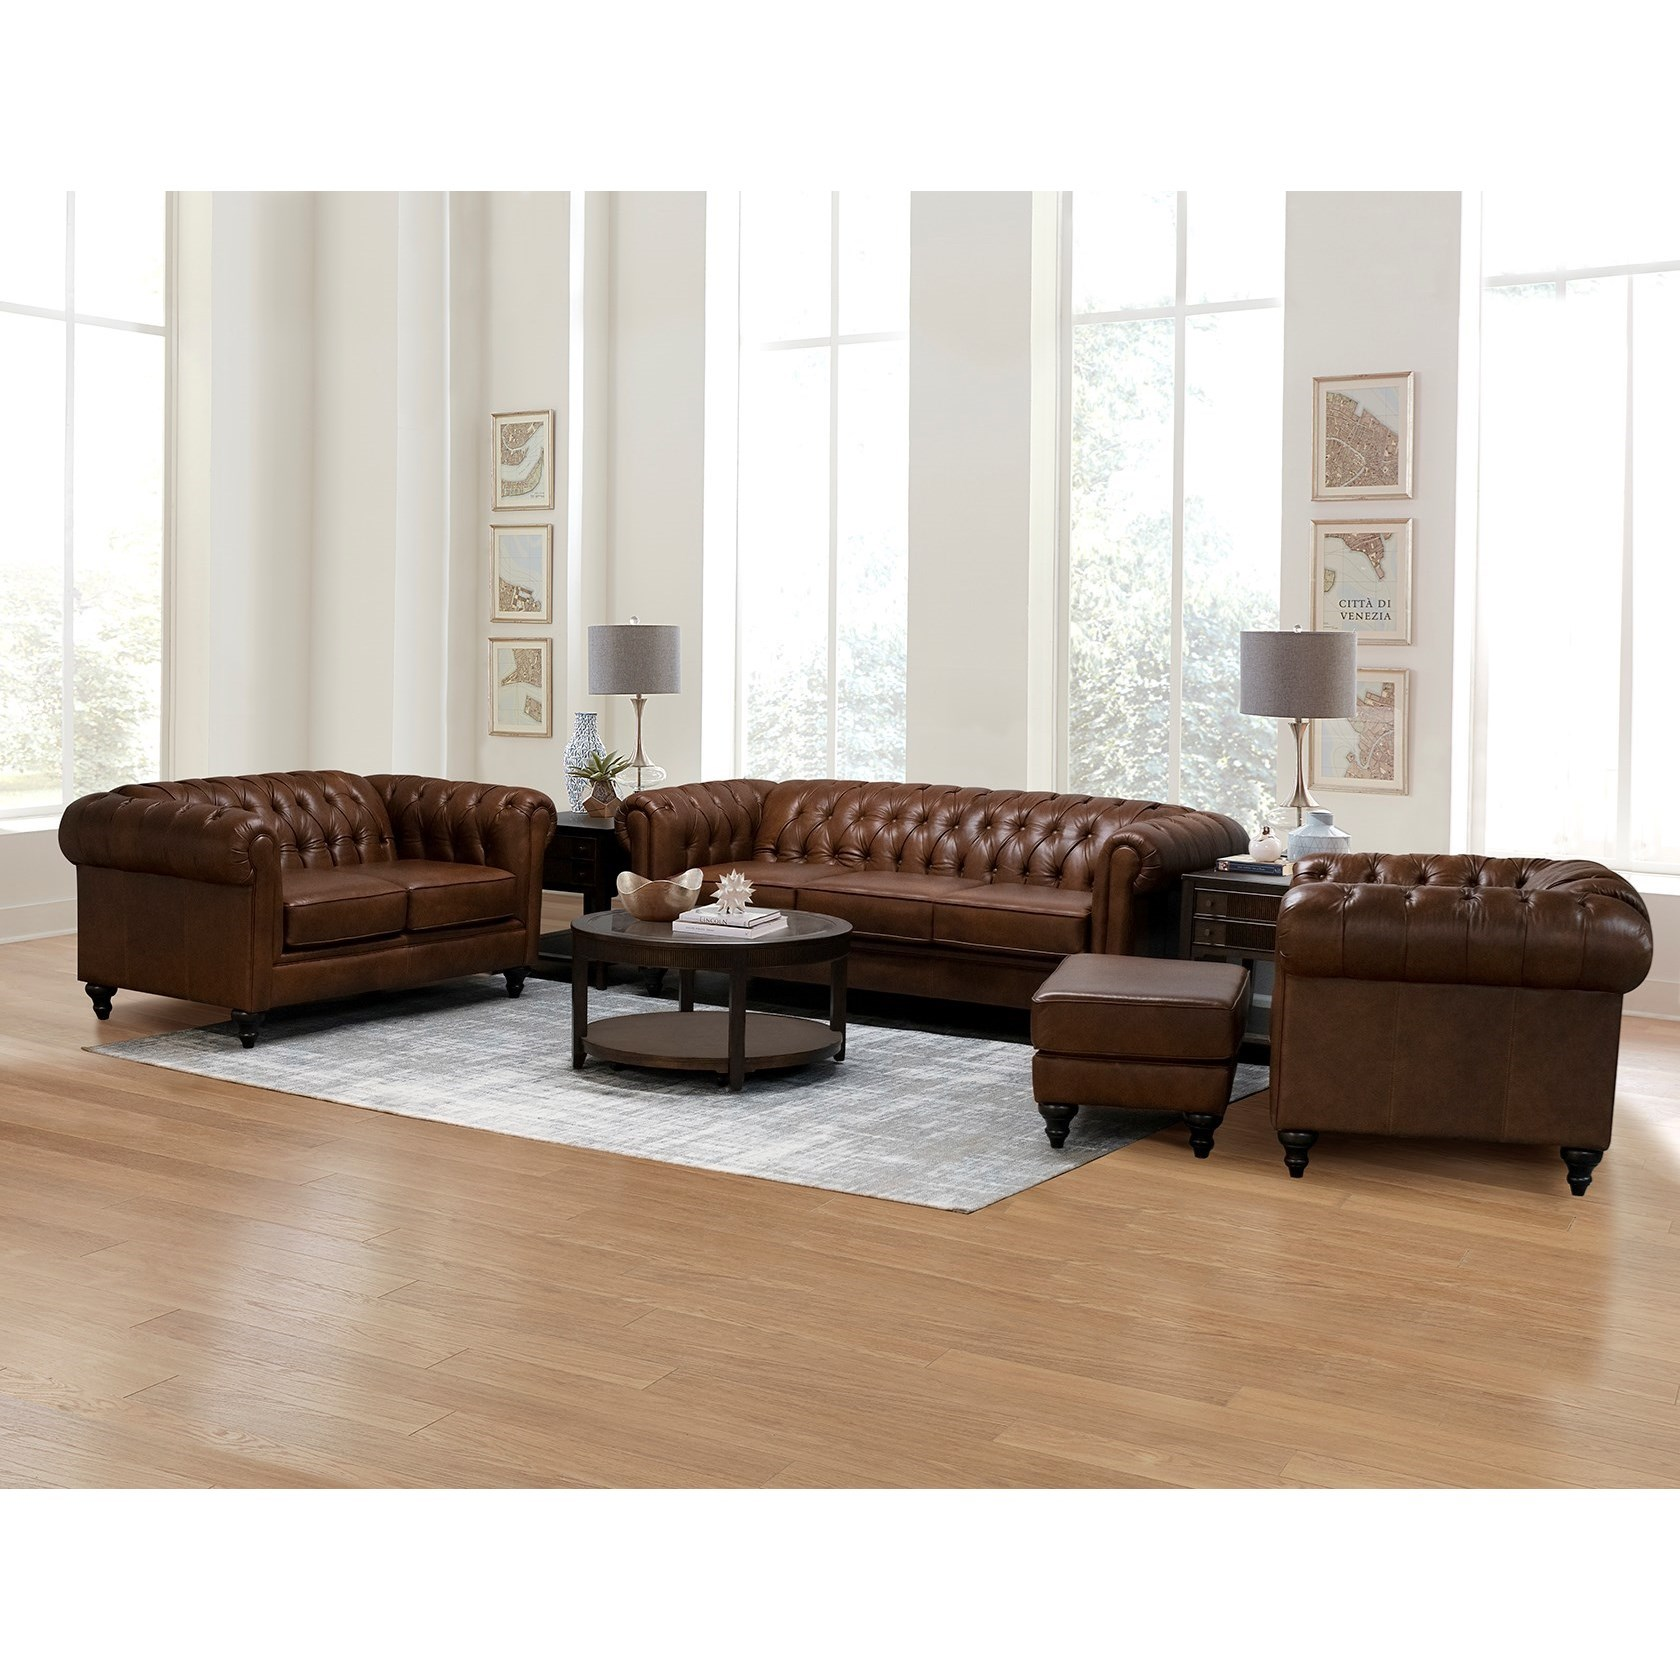 Brooks Stationary Living Room Group by England at Crowley Furniture & Mattress